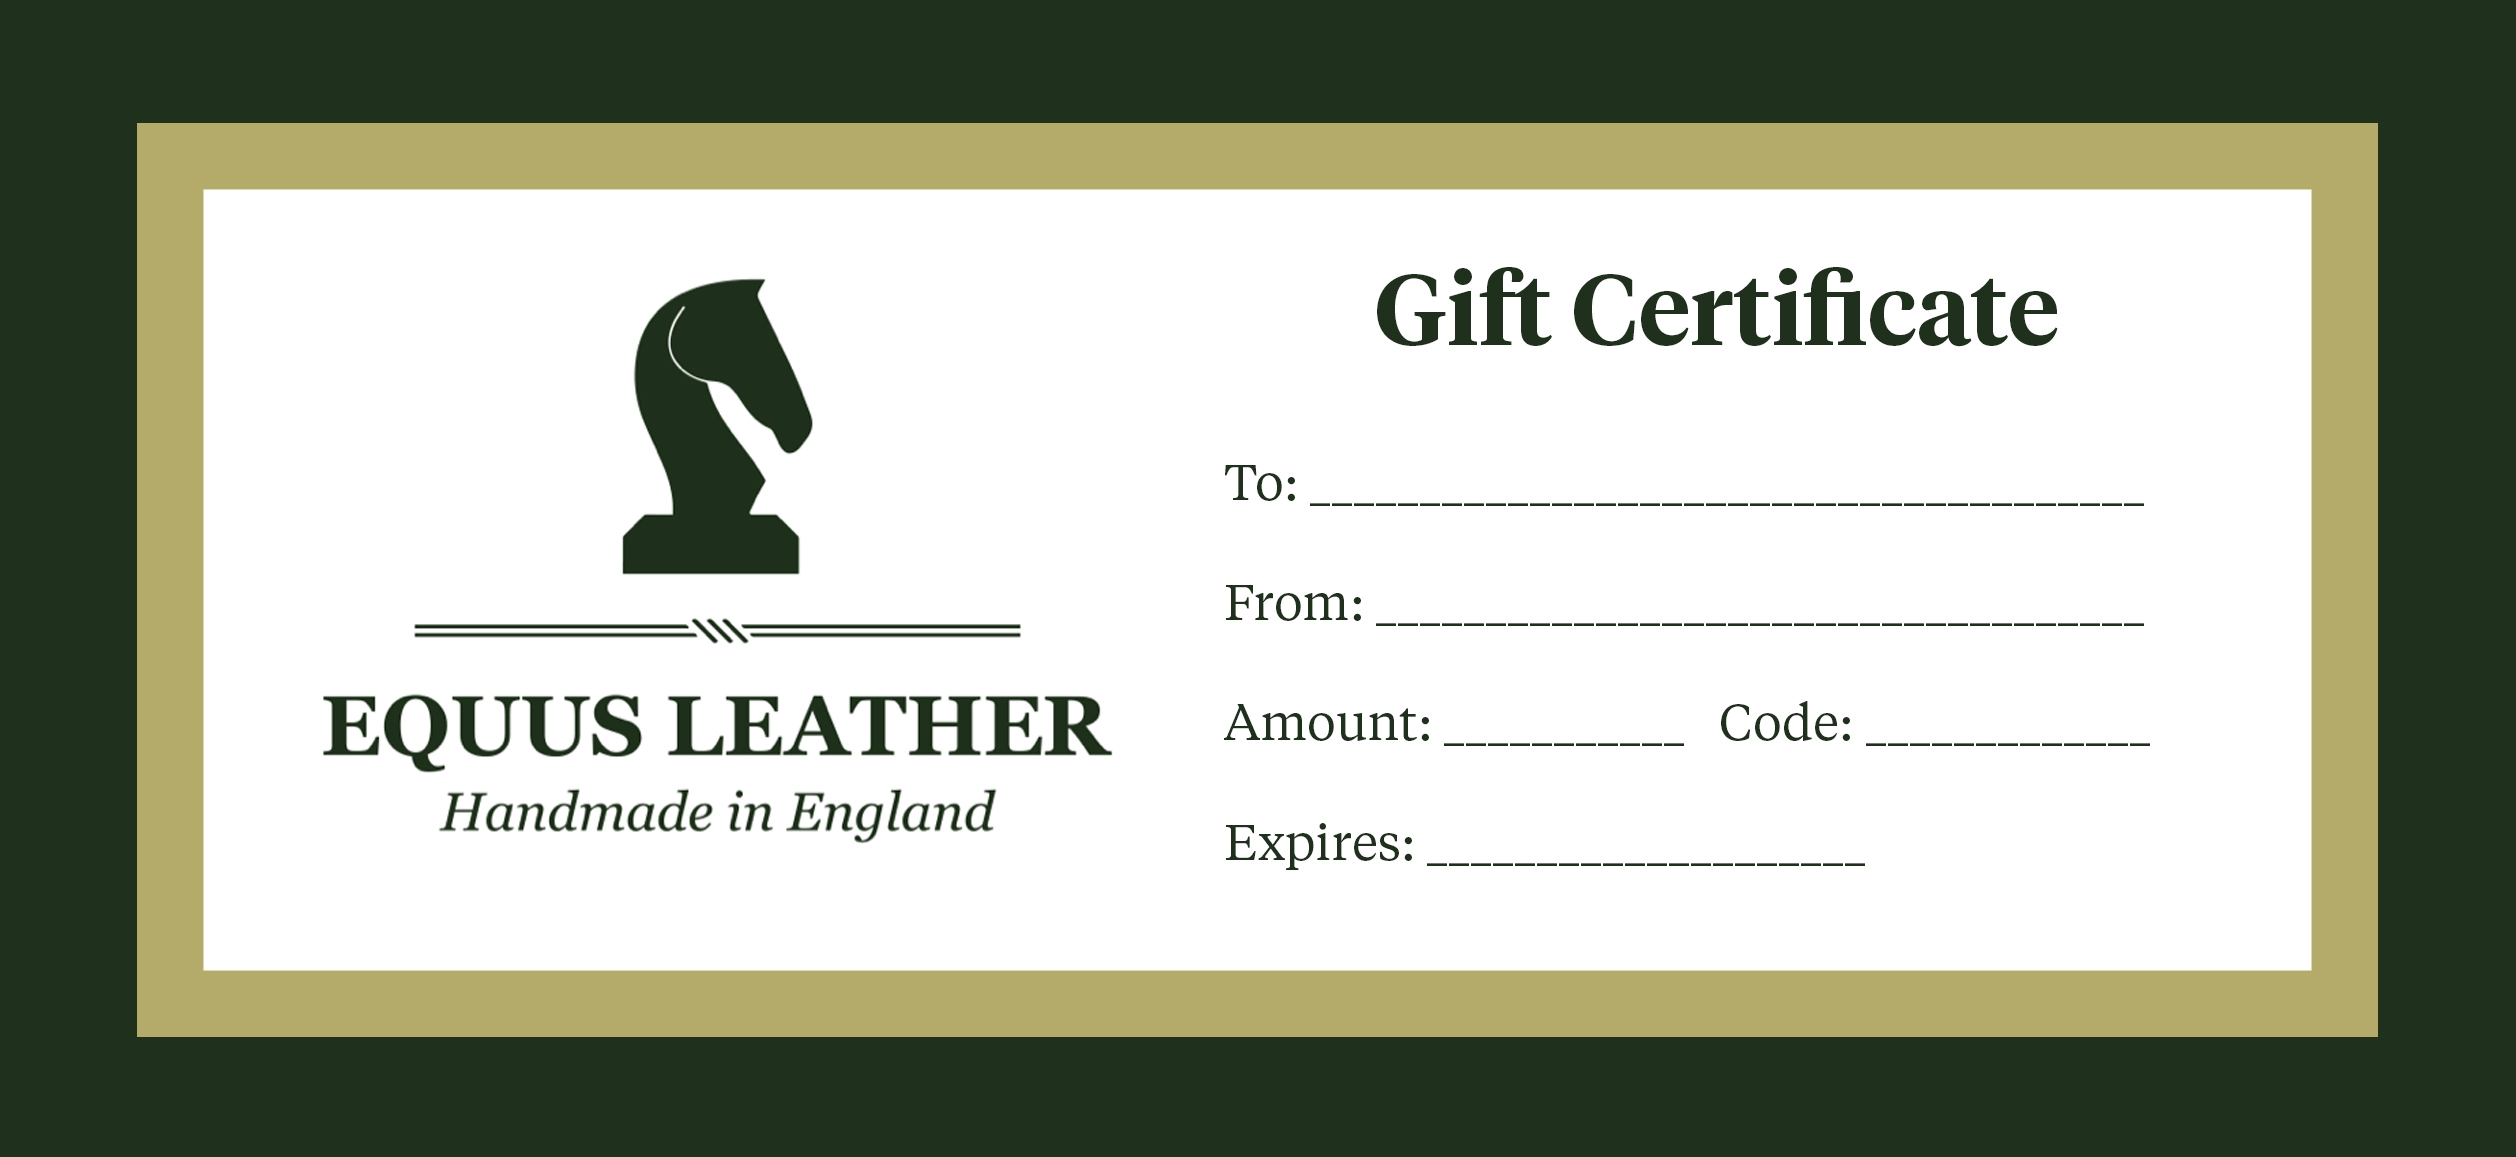 Email Download Gift Vouchers